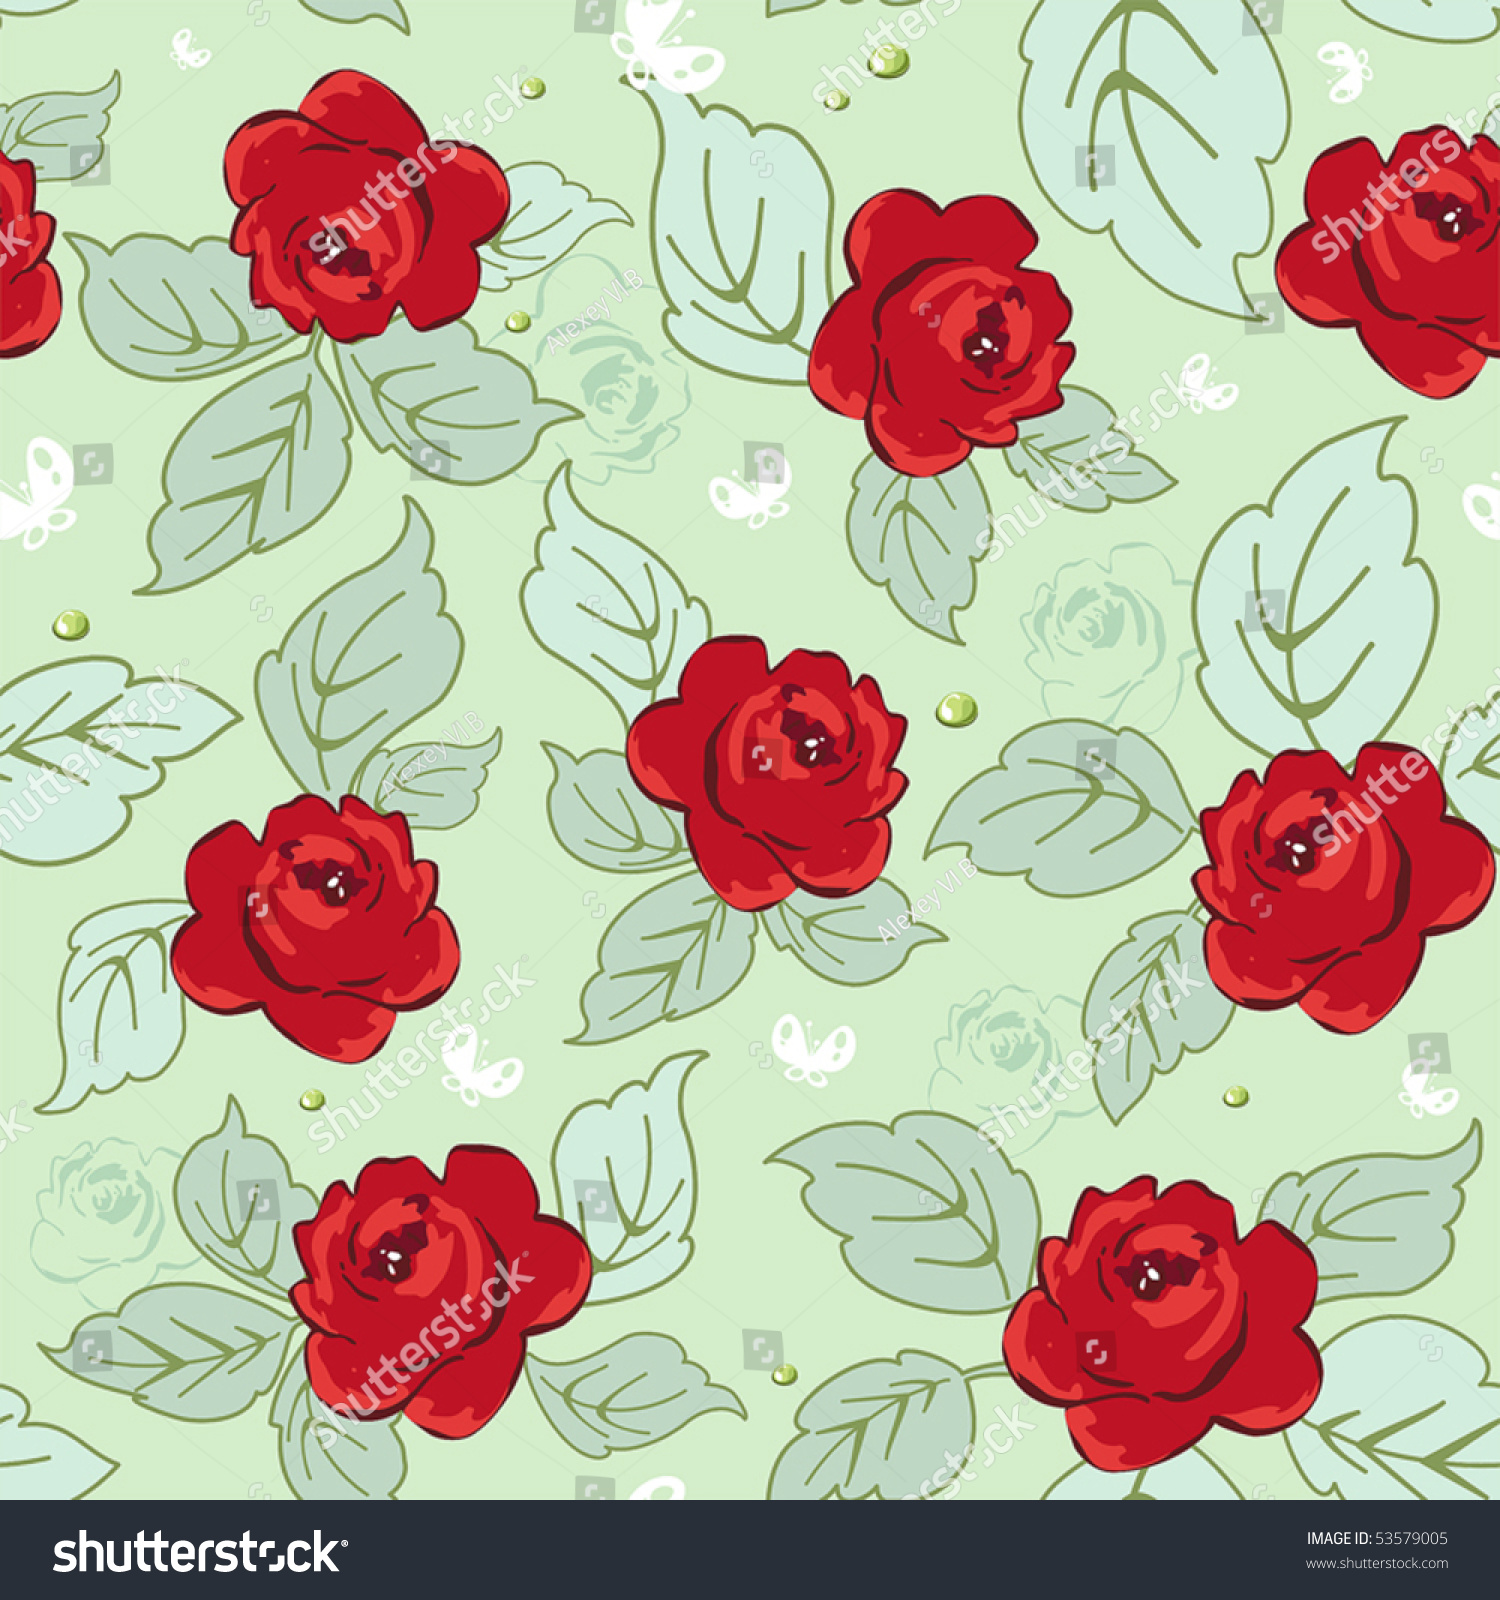 collection of floral design - photo #42